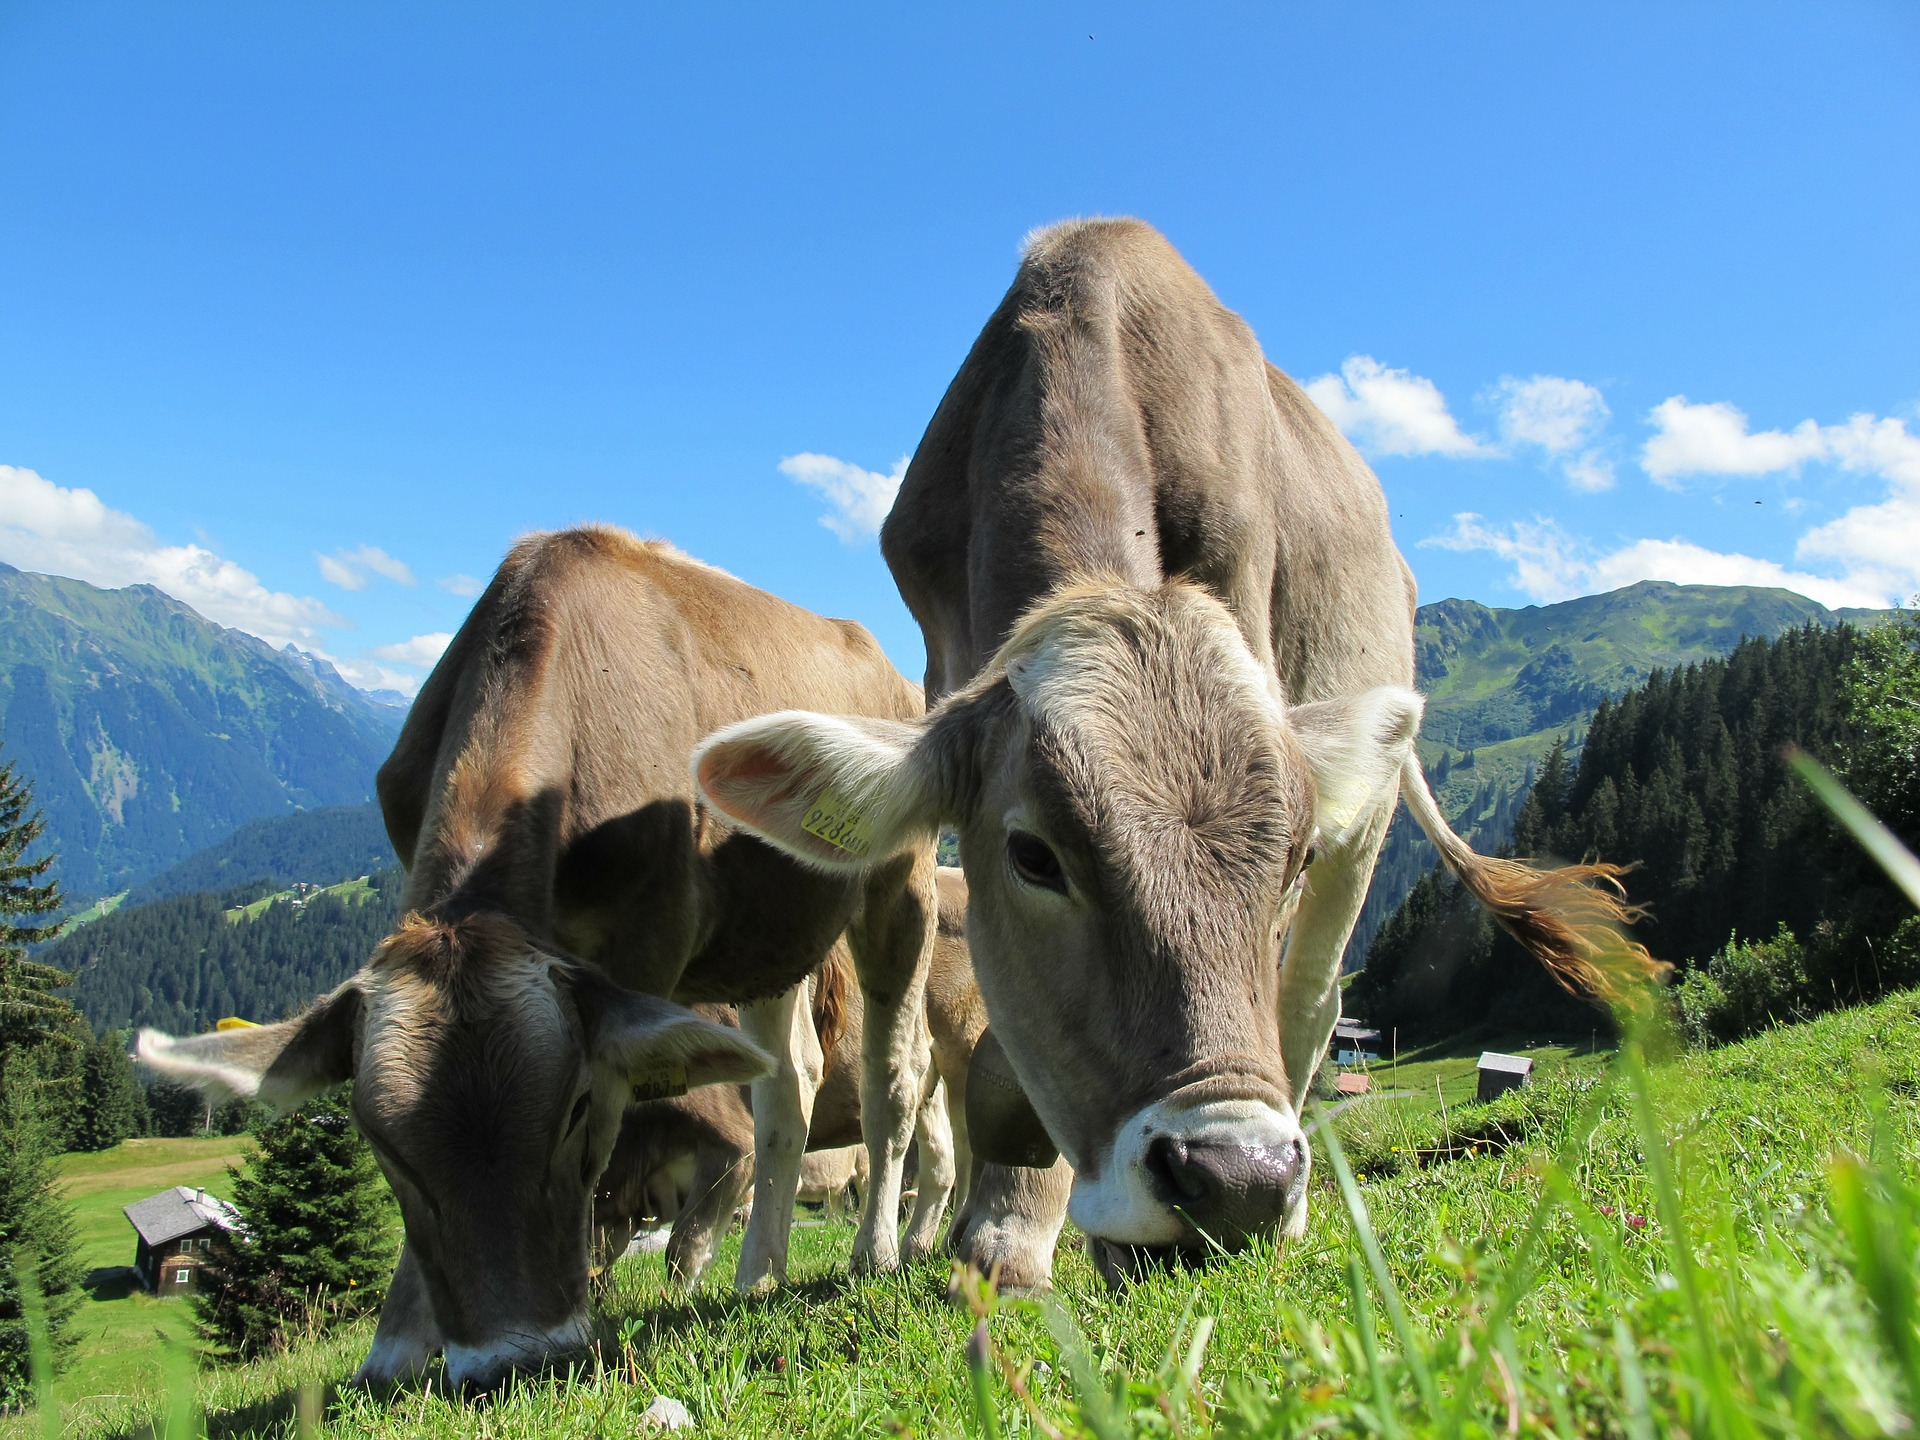 Brown cows feeding on grass in the mountains